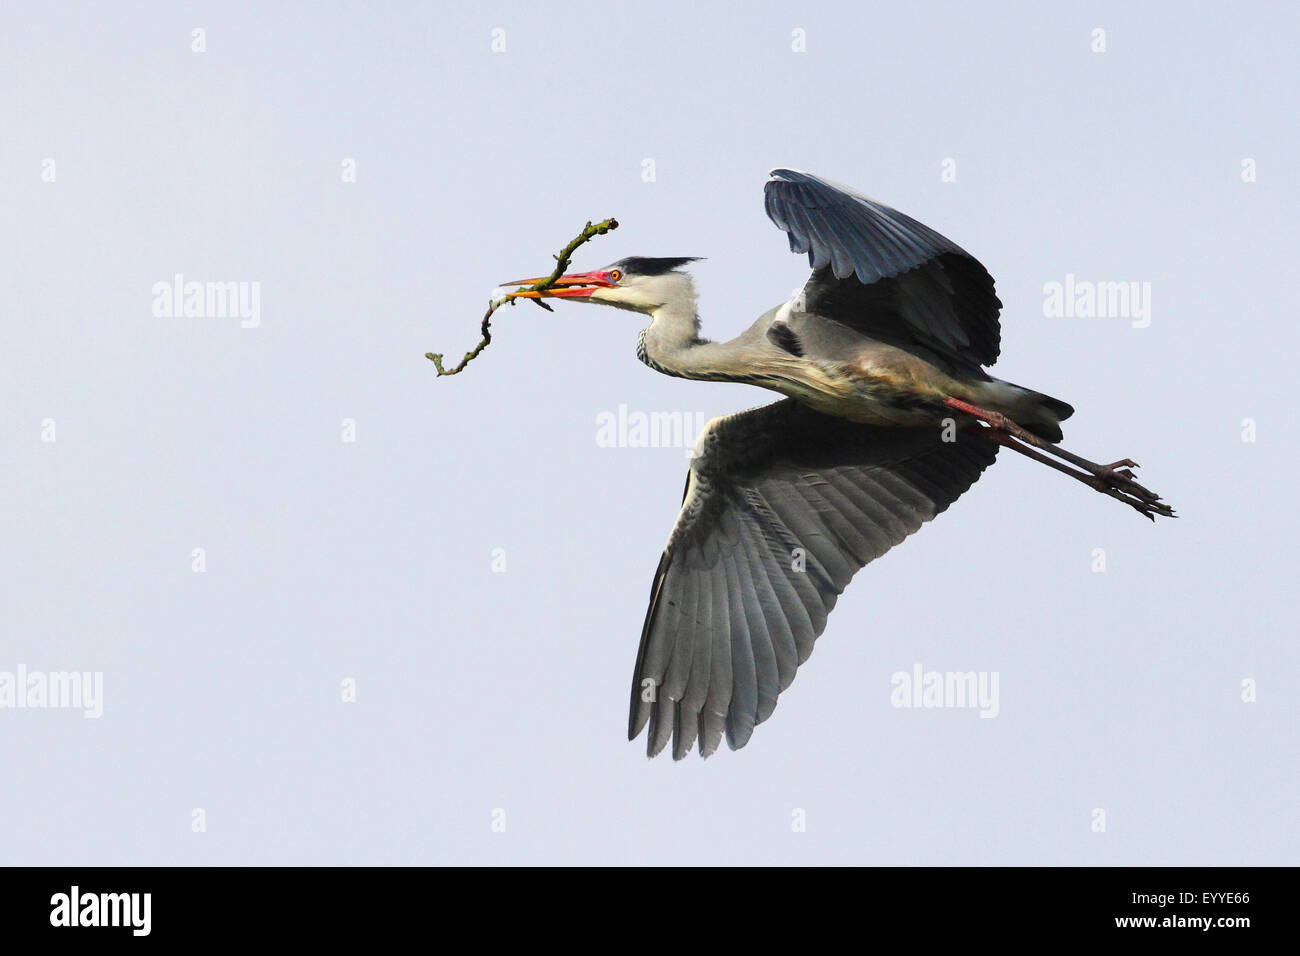 grey heron (Ardea cinerea), flys with nesting material in its bill, Germany - Stock Image